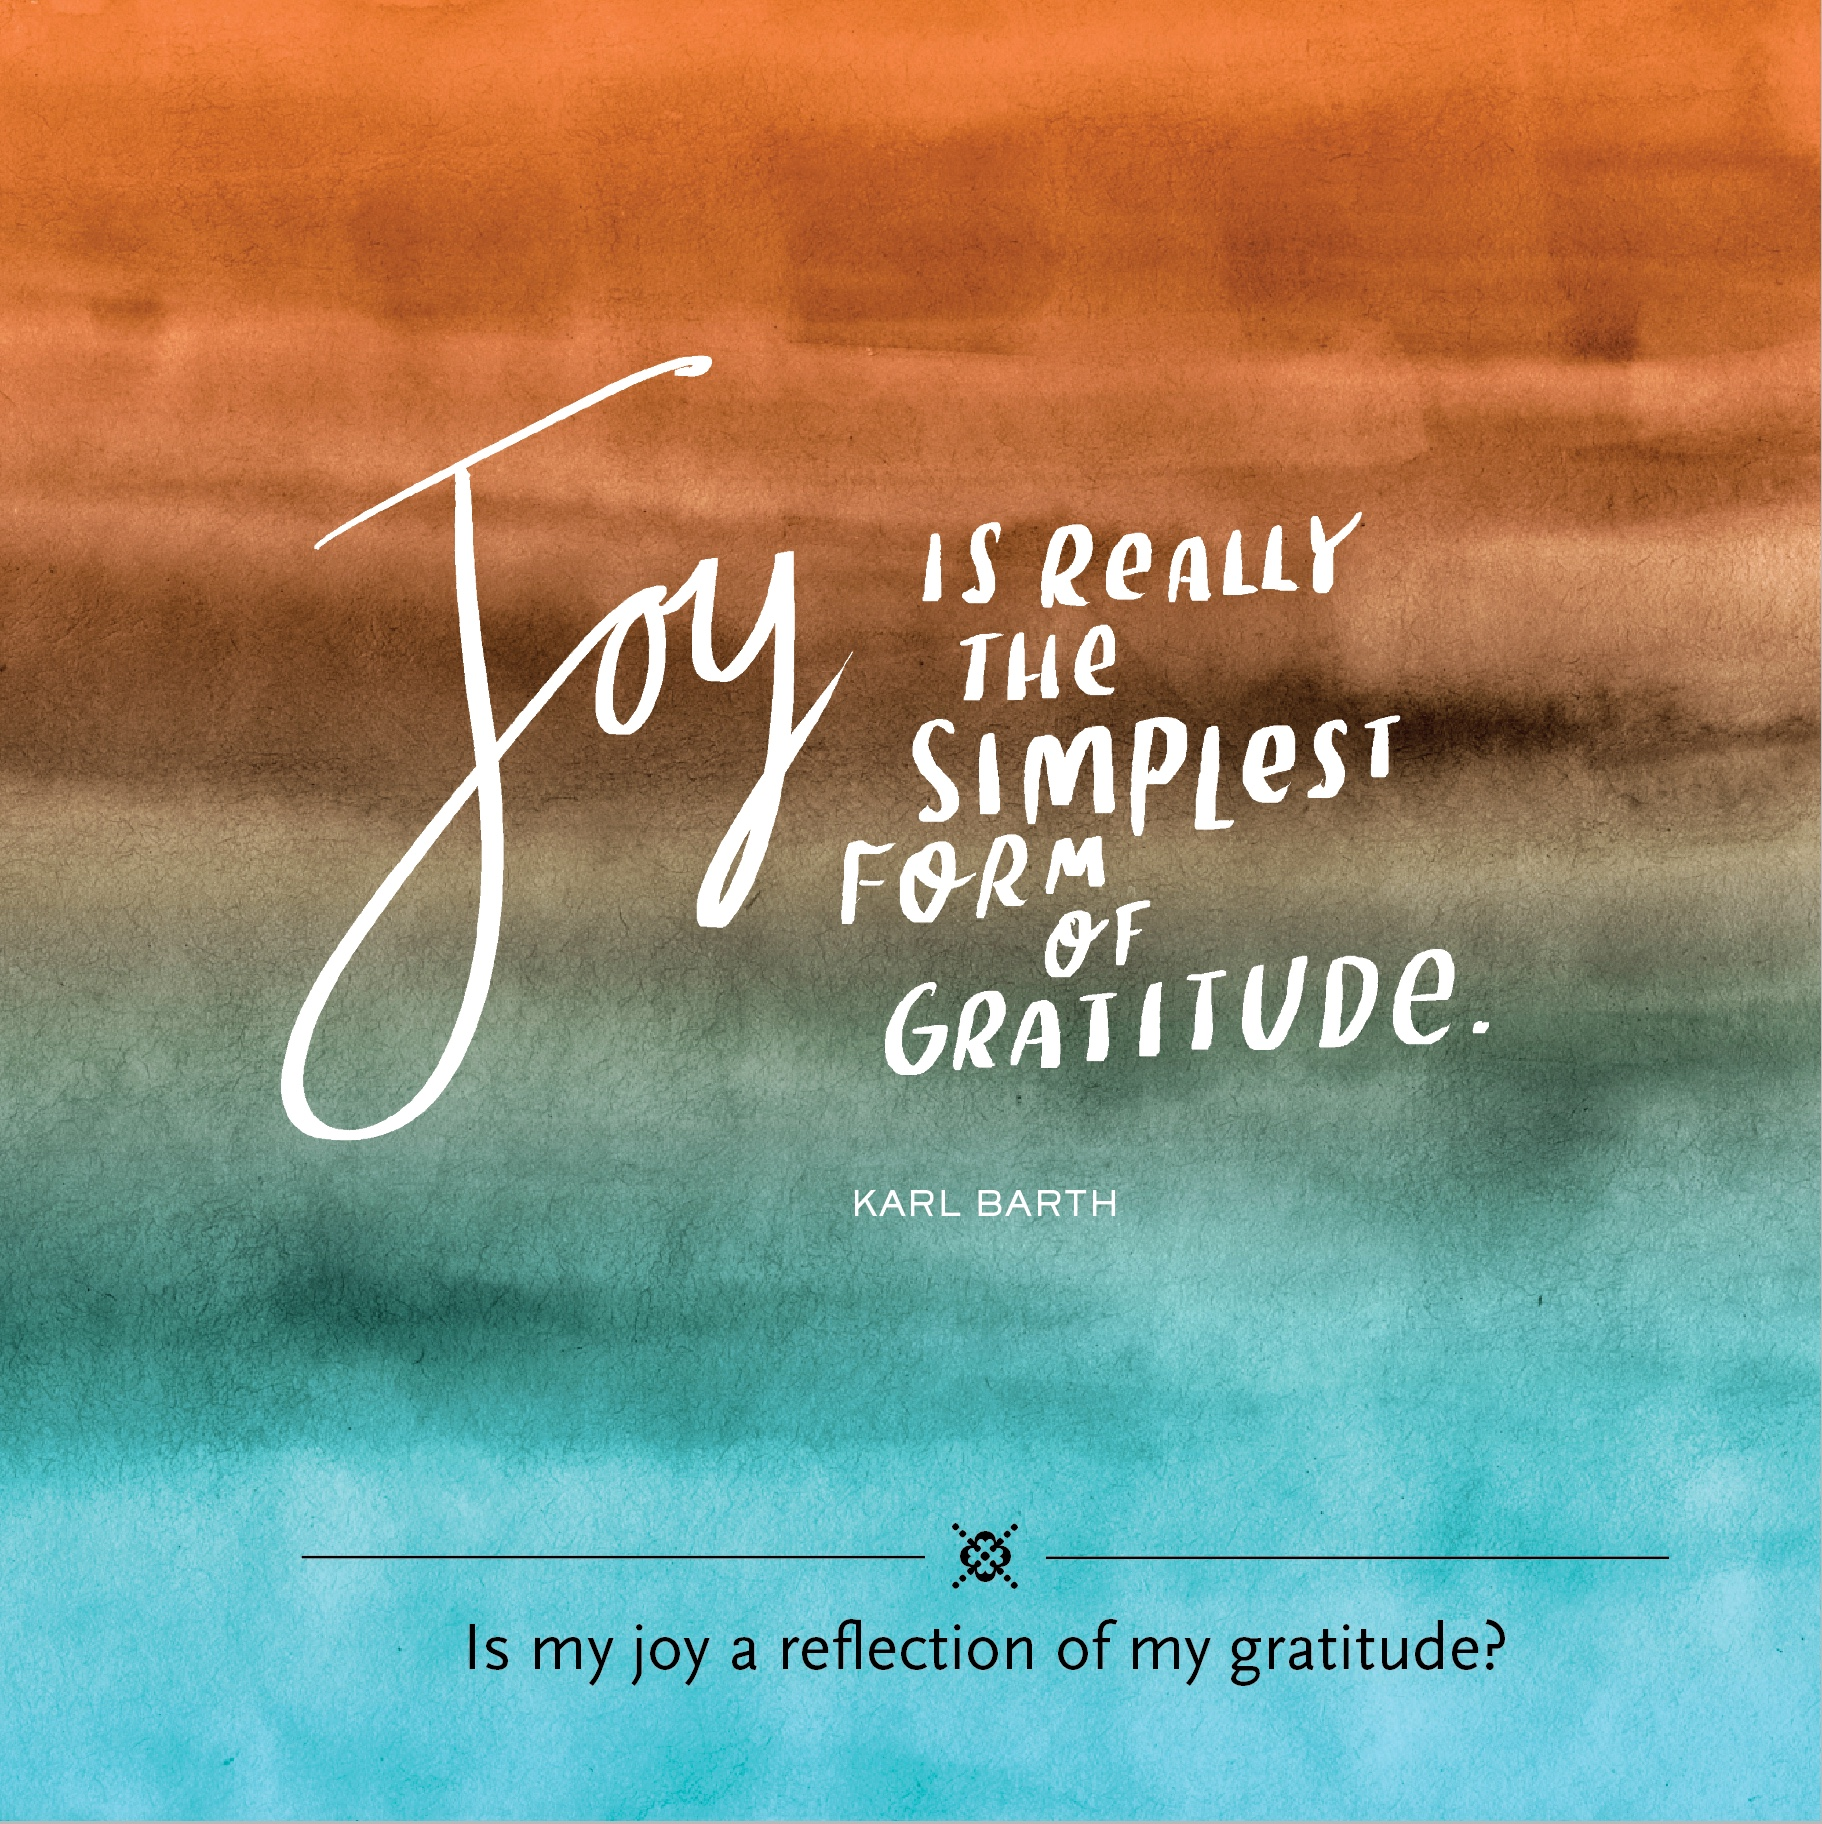 Inspiring Quotes That Will Make You Feel More Grateful